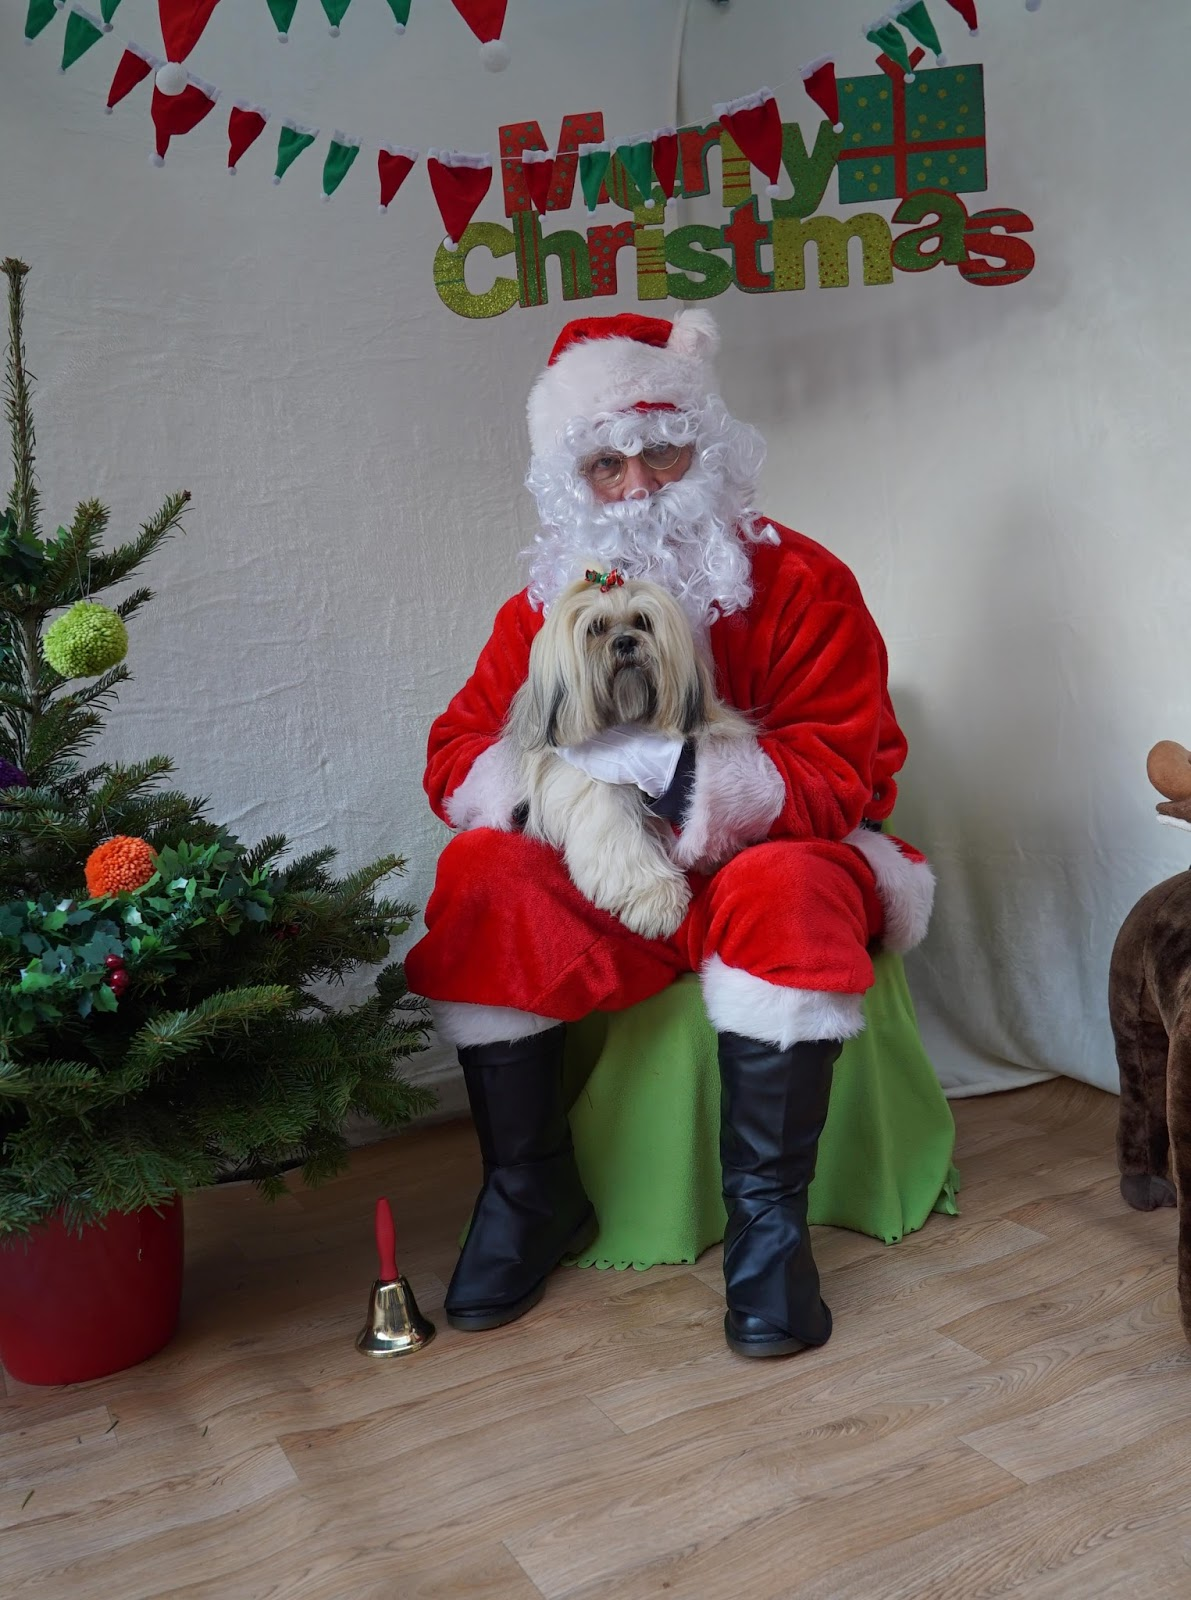 Elsa Had Her Picture Taken With Him And Got A Goody Bag Proceeds For This Photo Shoot Go To The Ark Ashbourne Animal Welfare